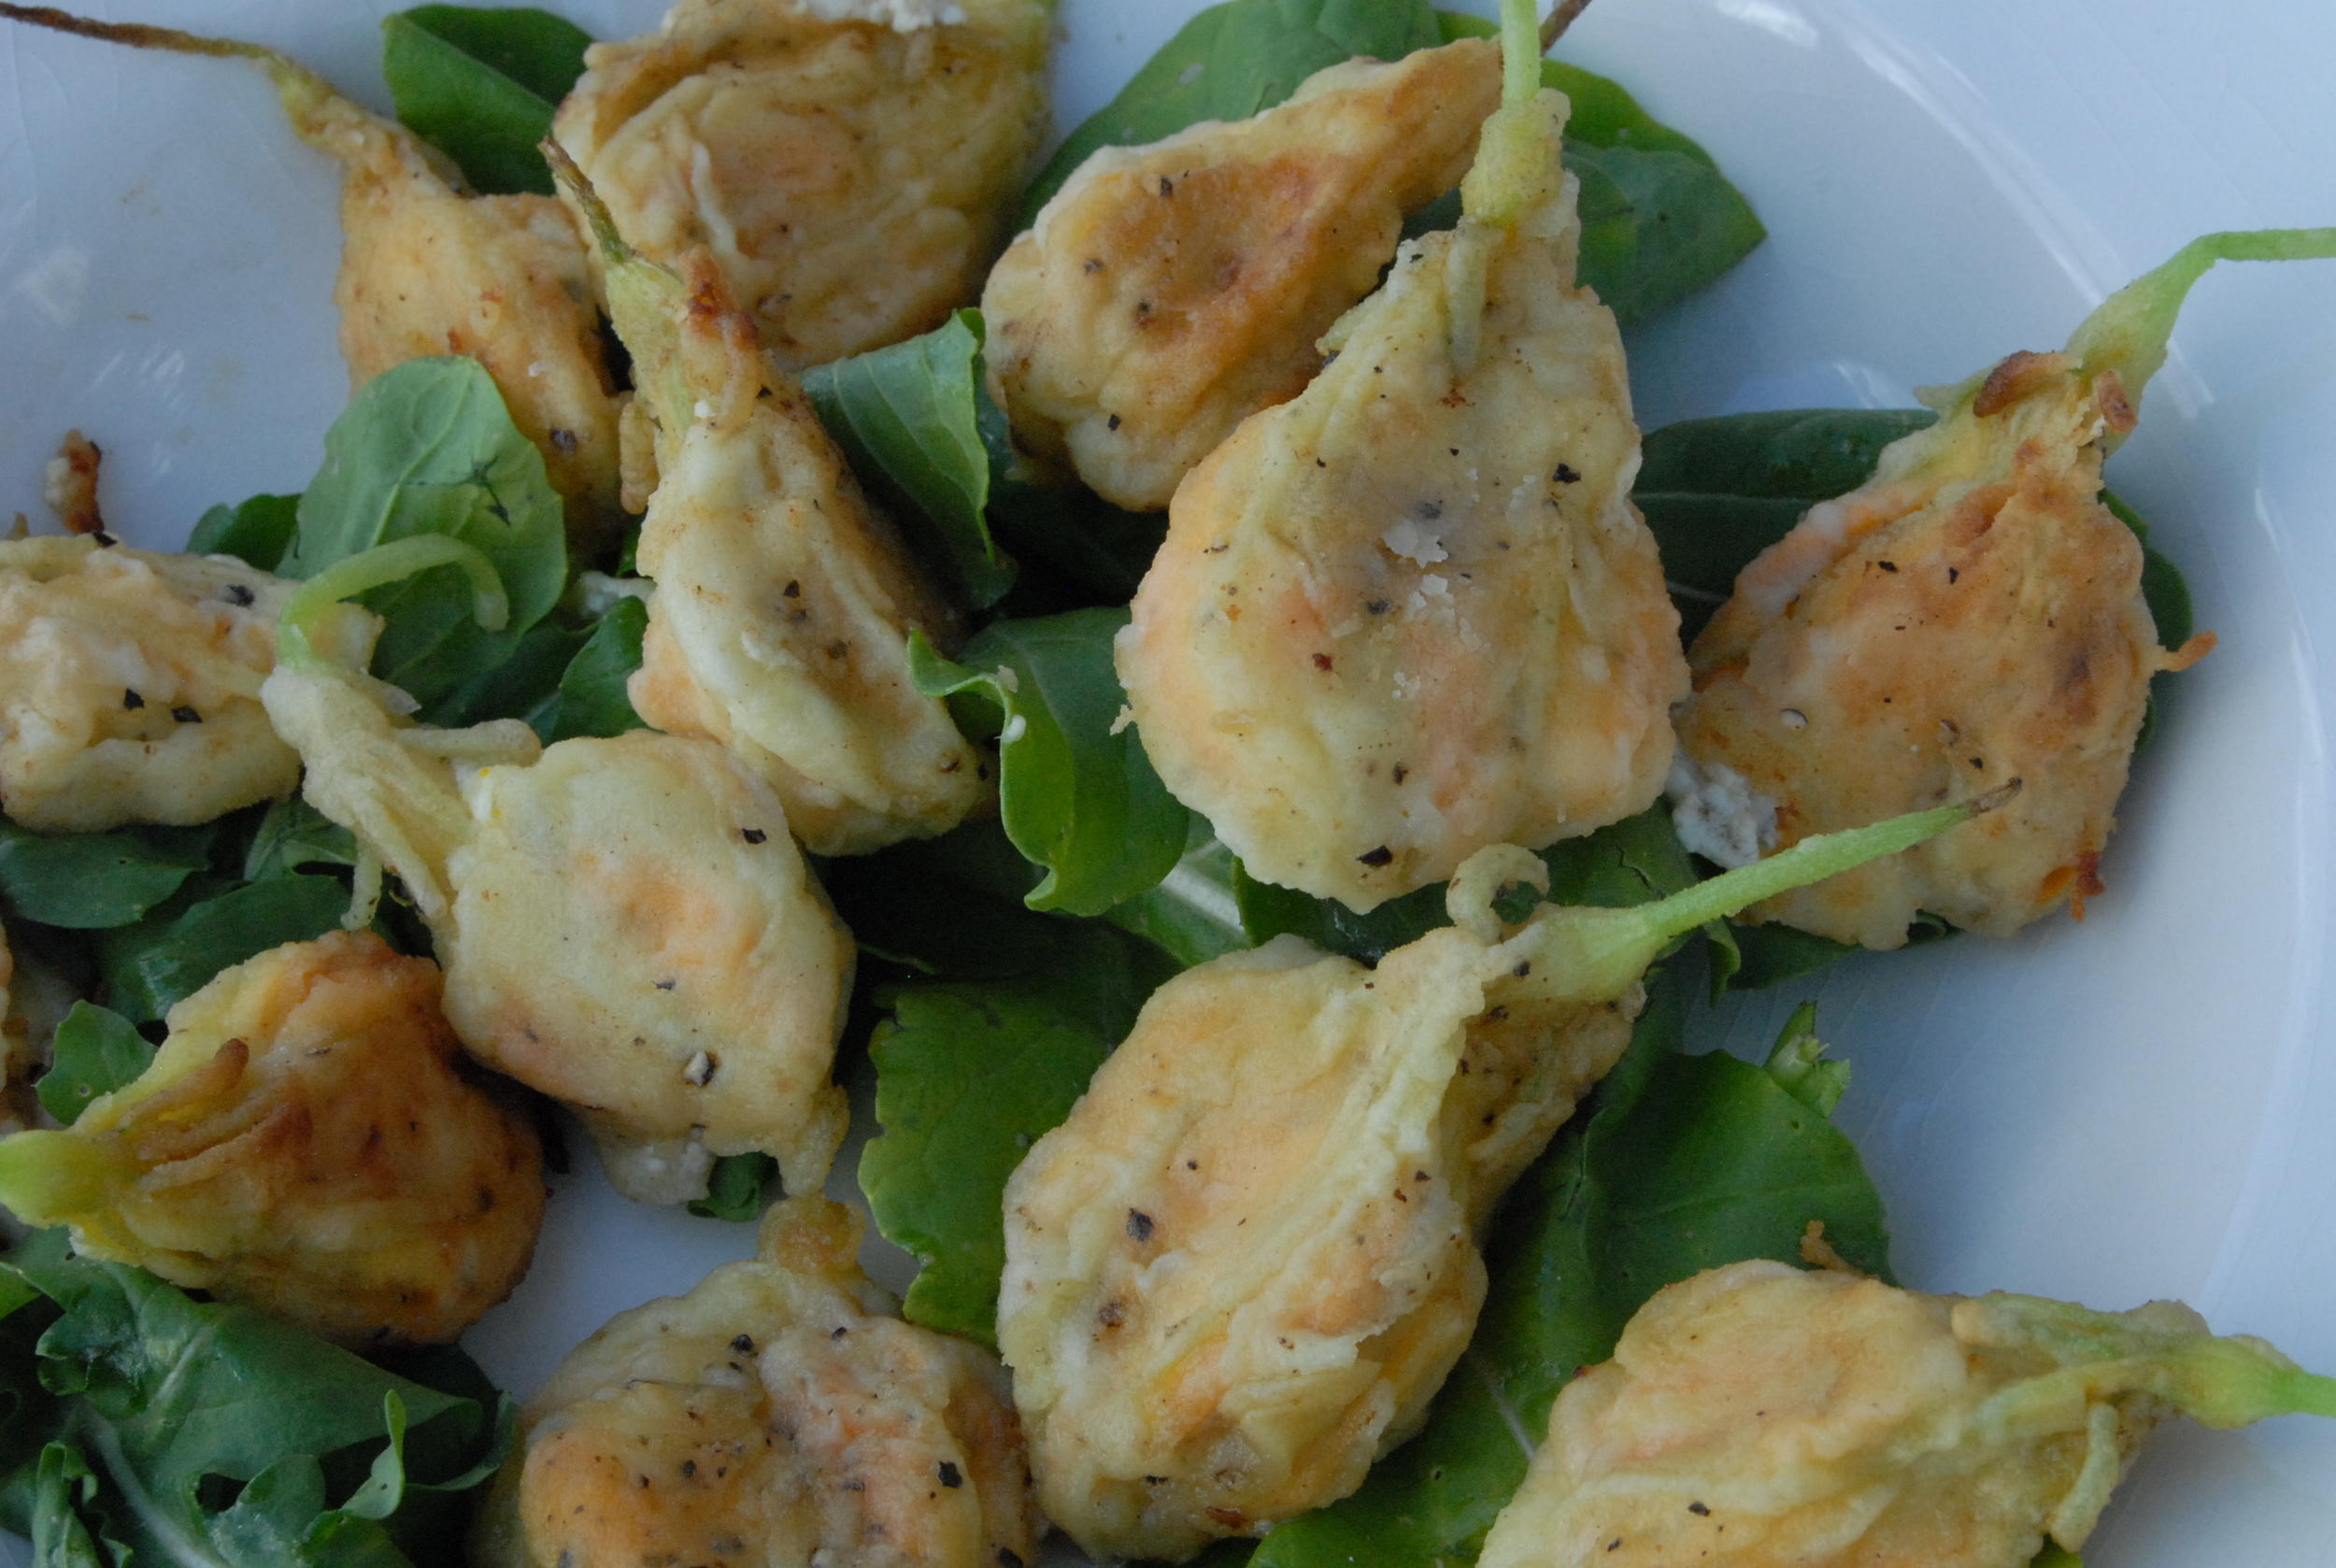 Sauteed Squash Blossoms Stuffed w/Goat Cheese